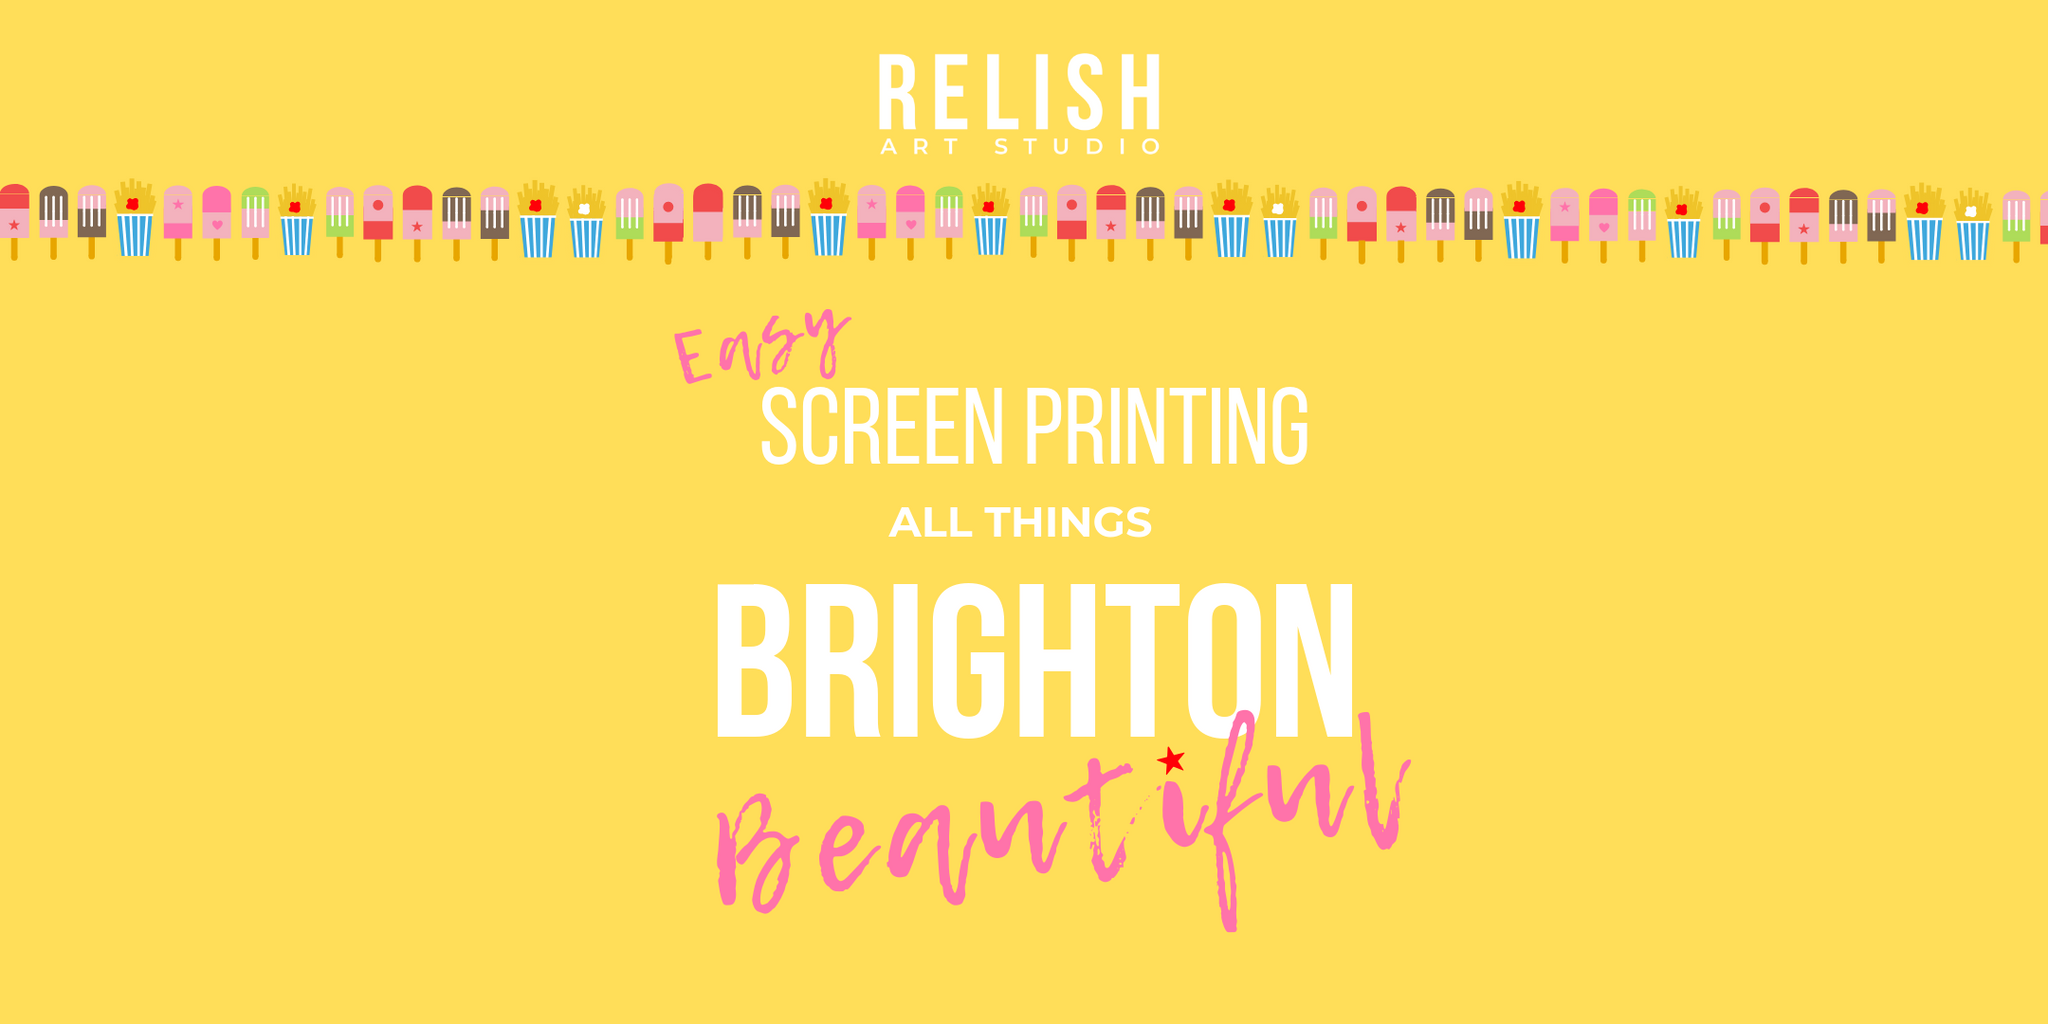 Relish Art Studio Brighton screen printing workshops